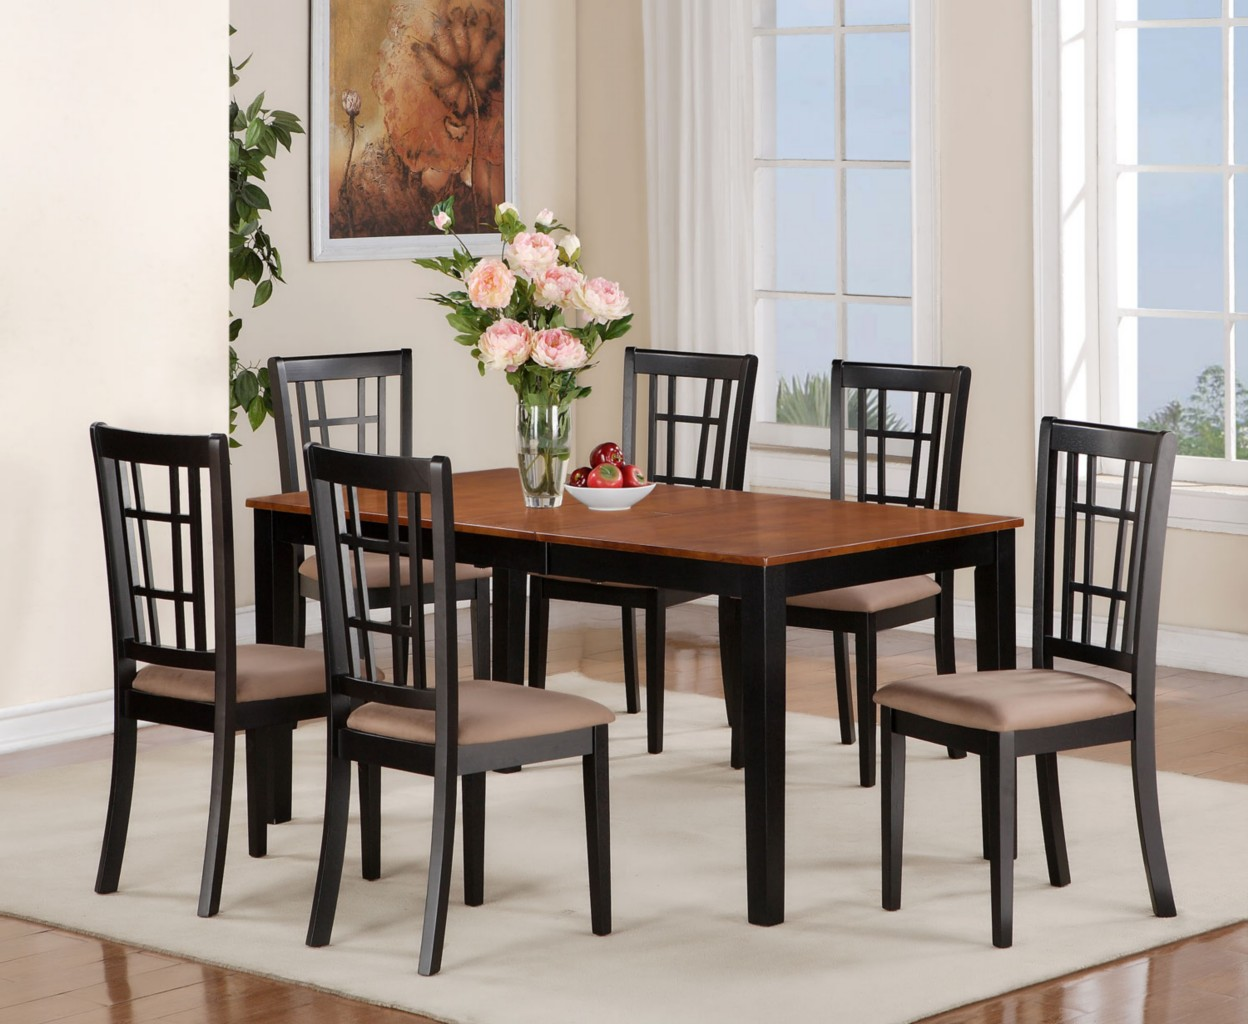 5pc Dinette Kitchen Dining Set Rectangular Table Amp 4